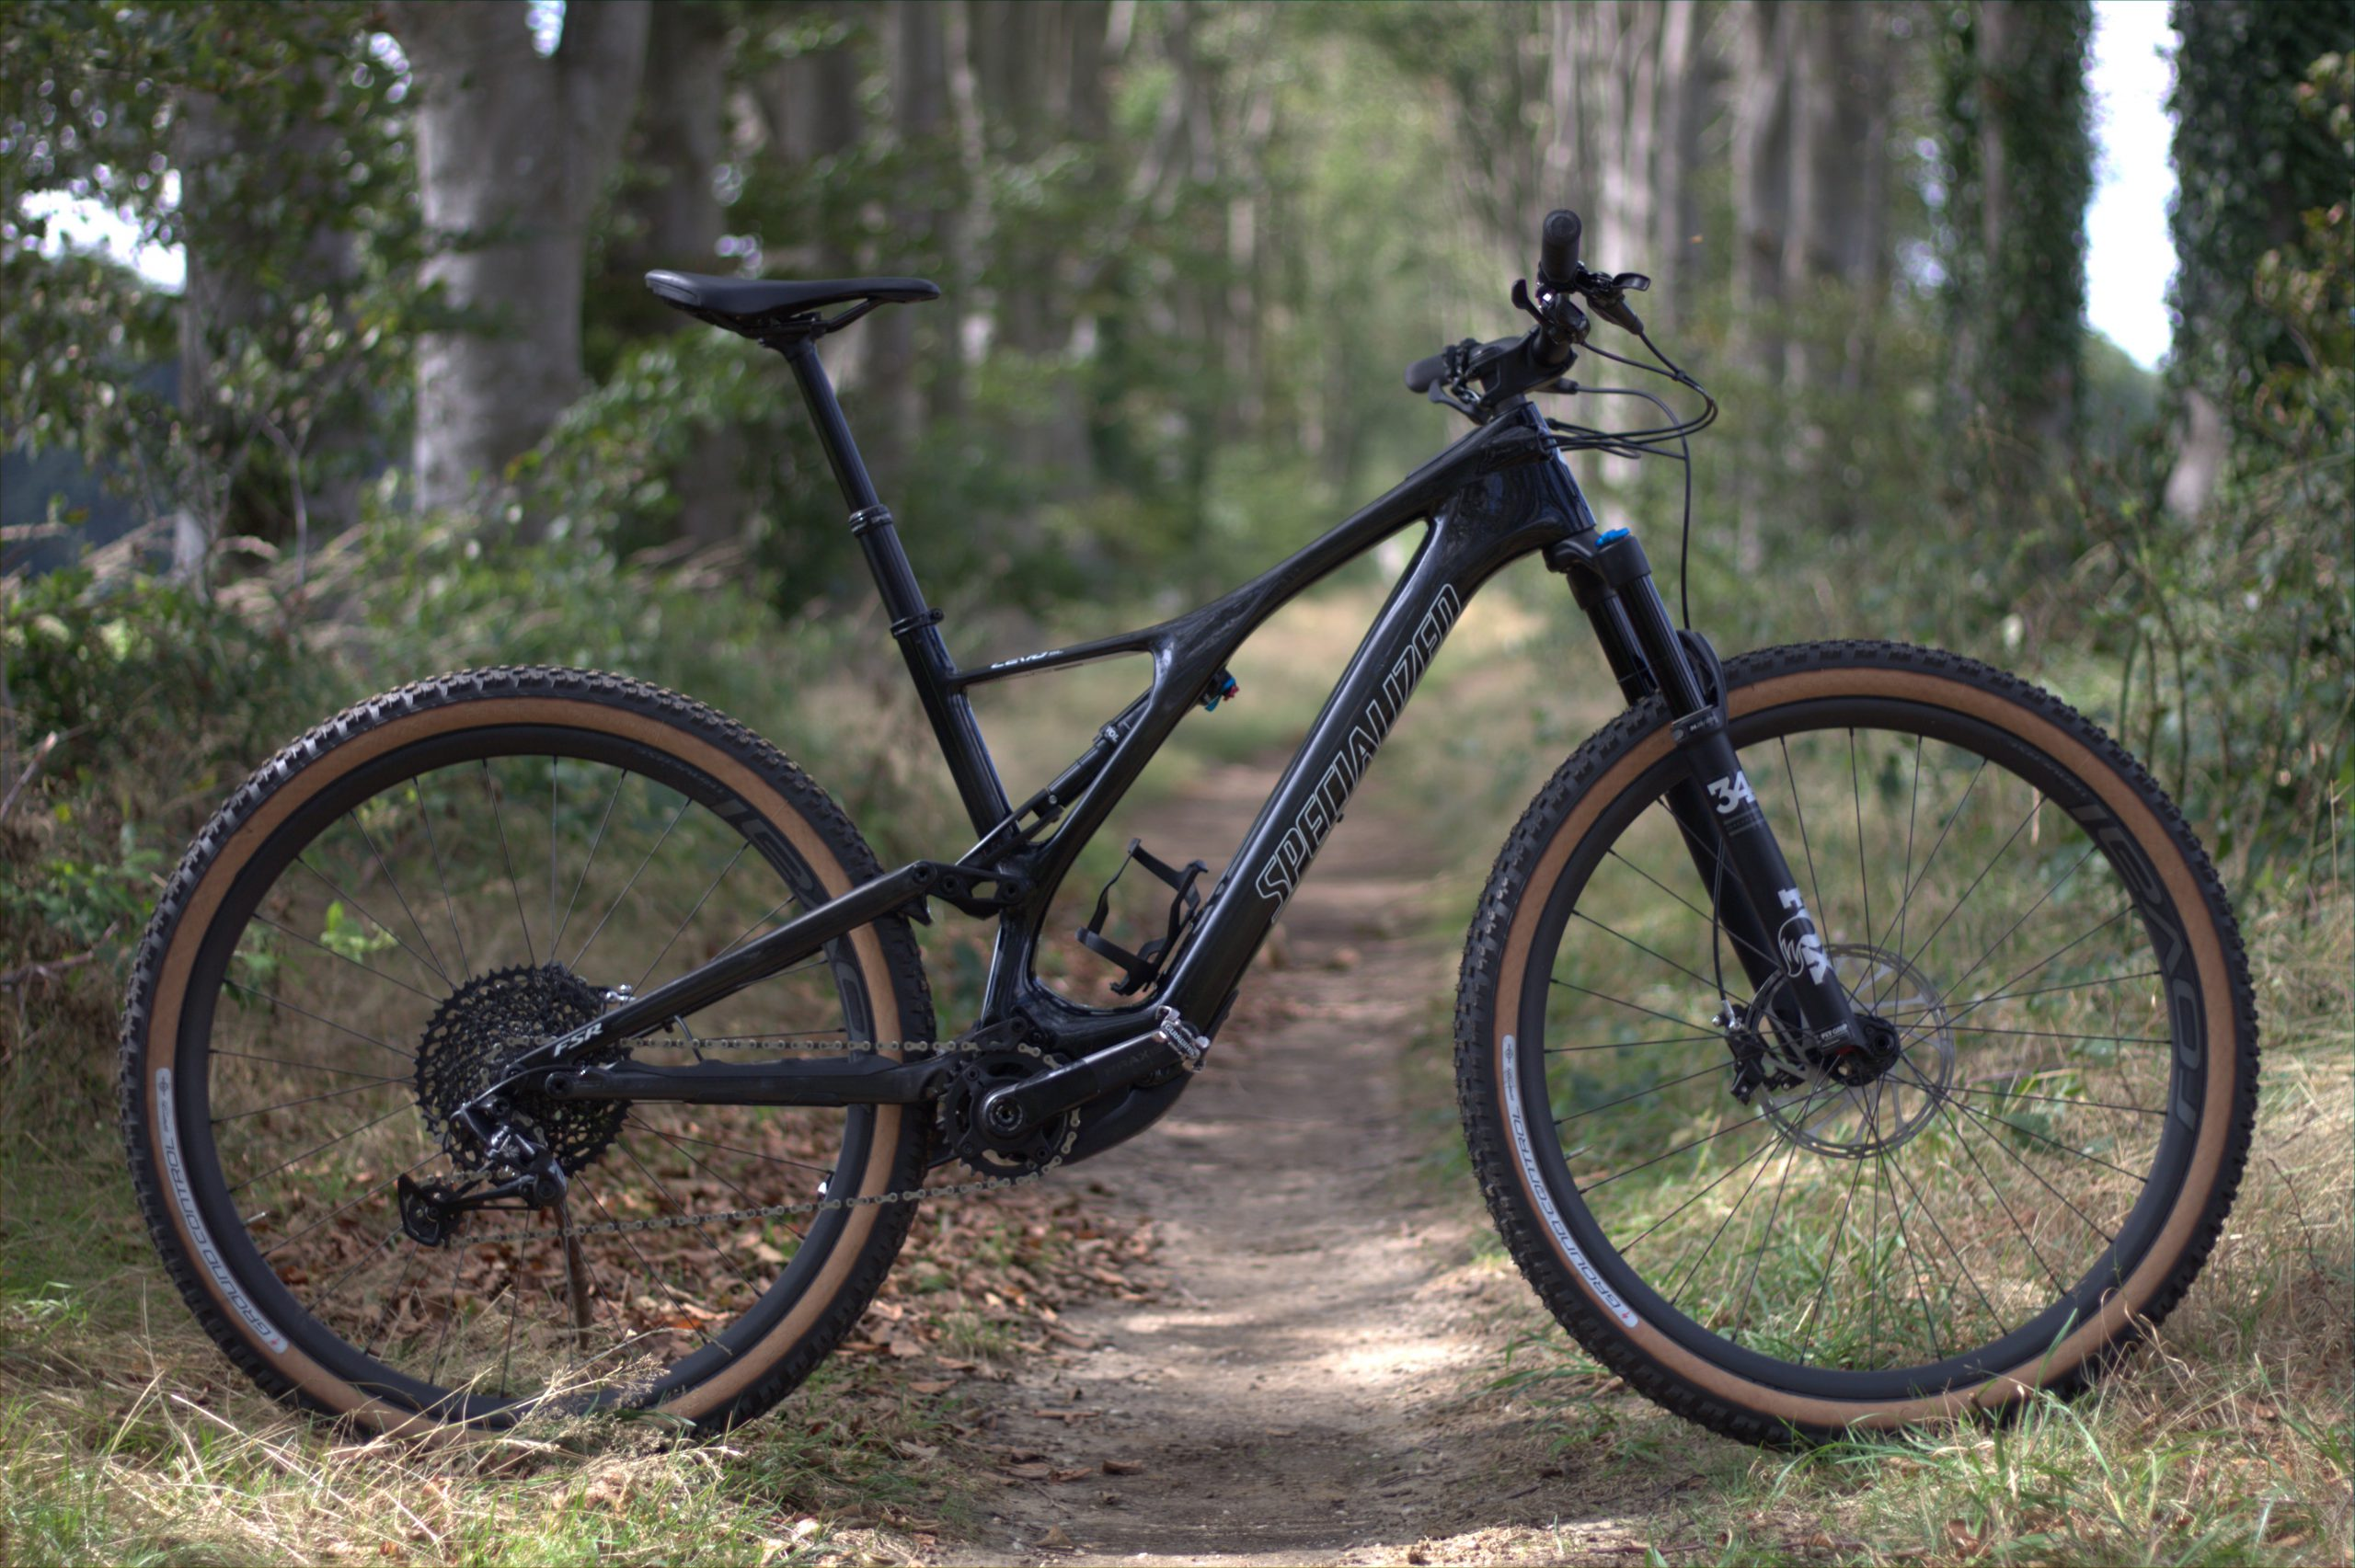 Review: Specialized Turbo Levo SL Expert Carbon